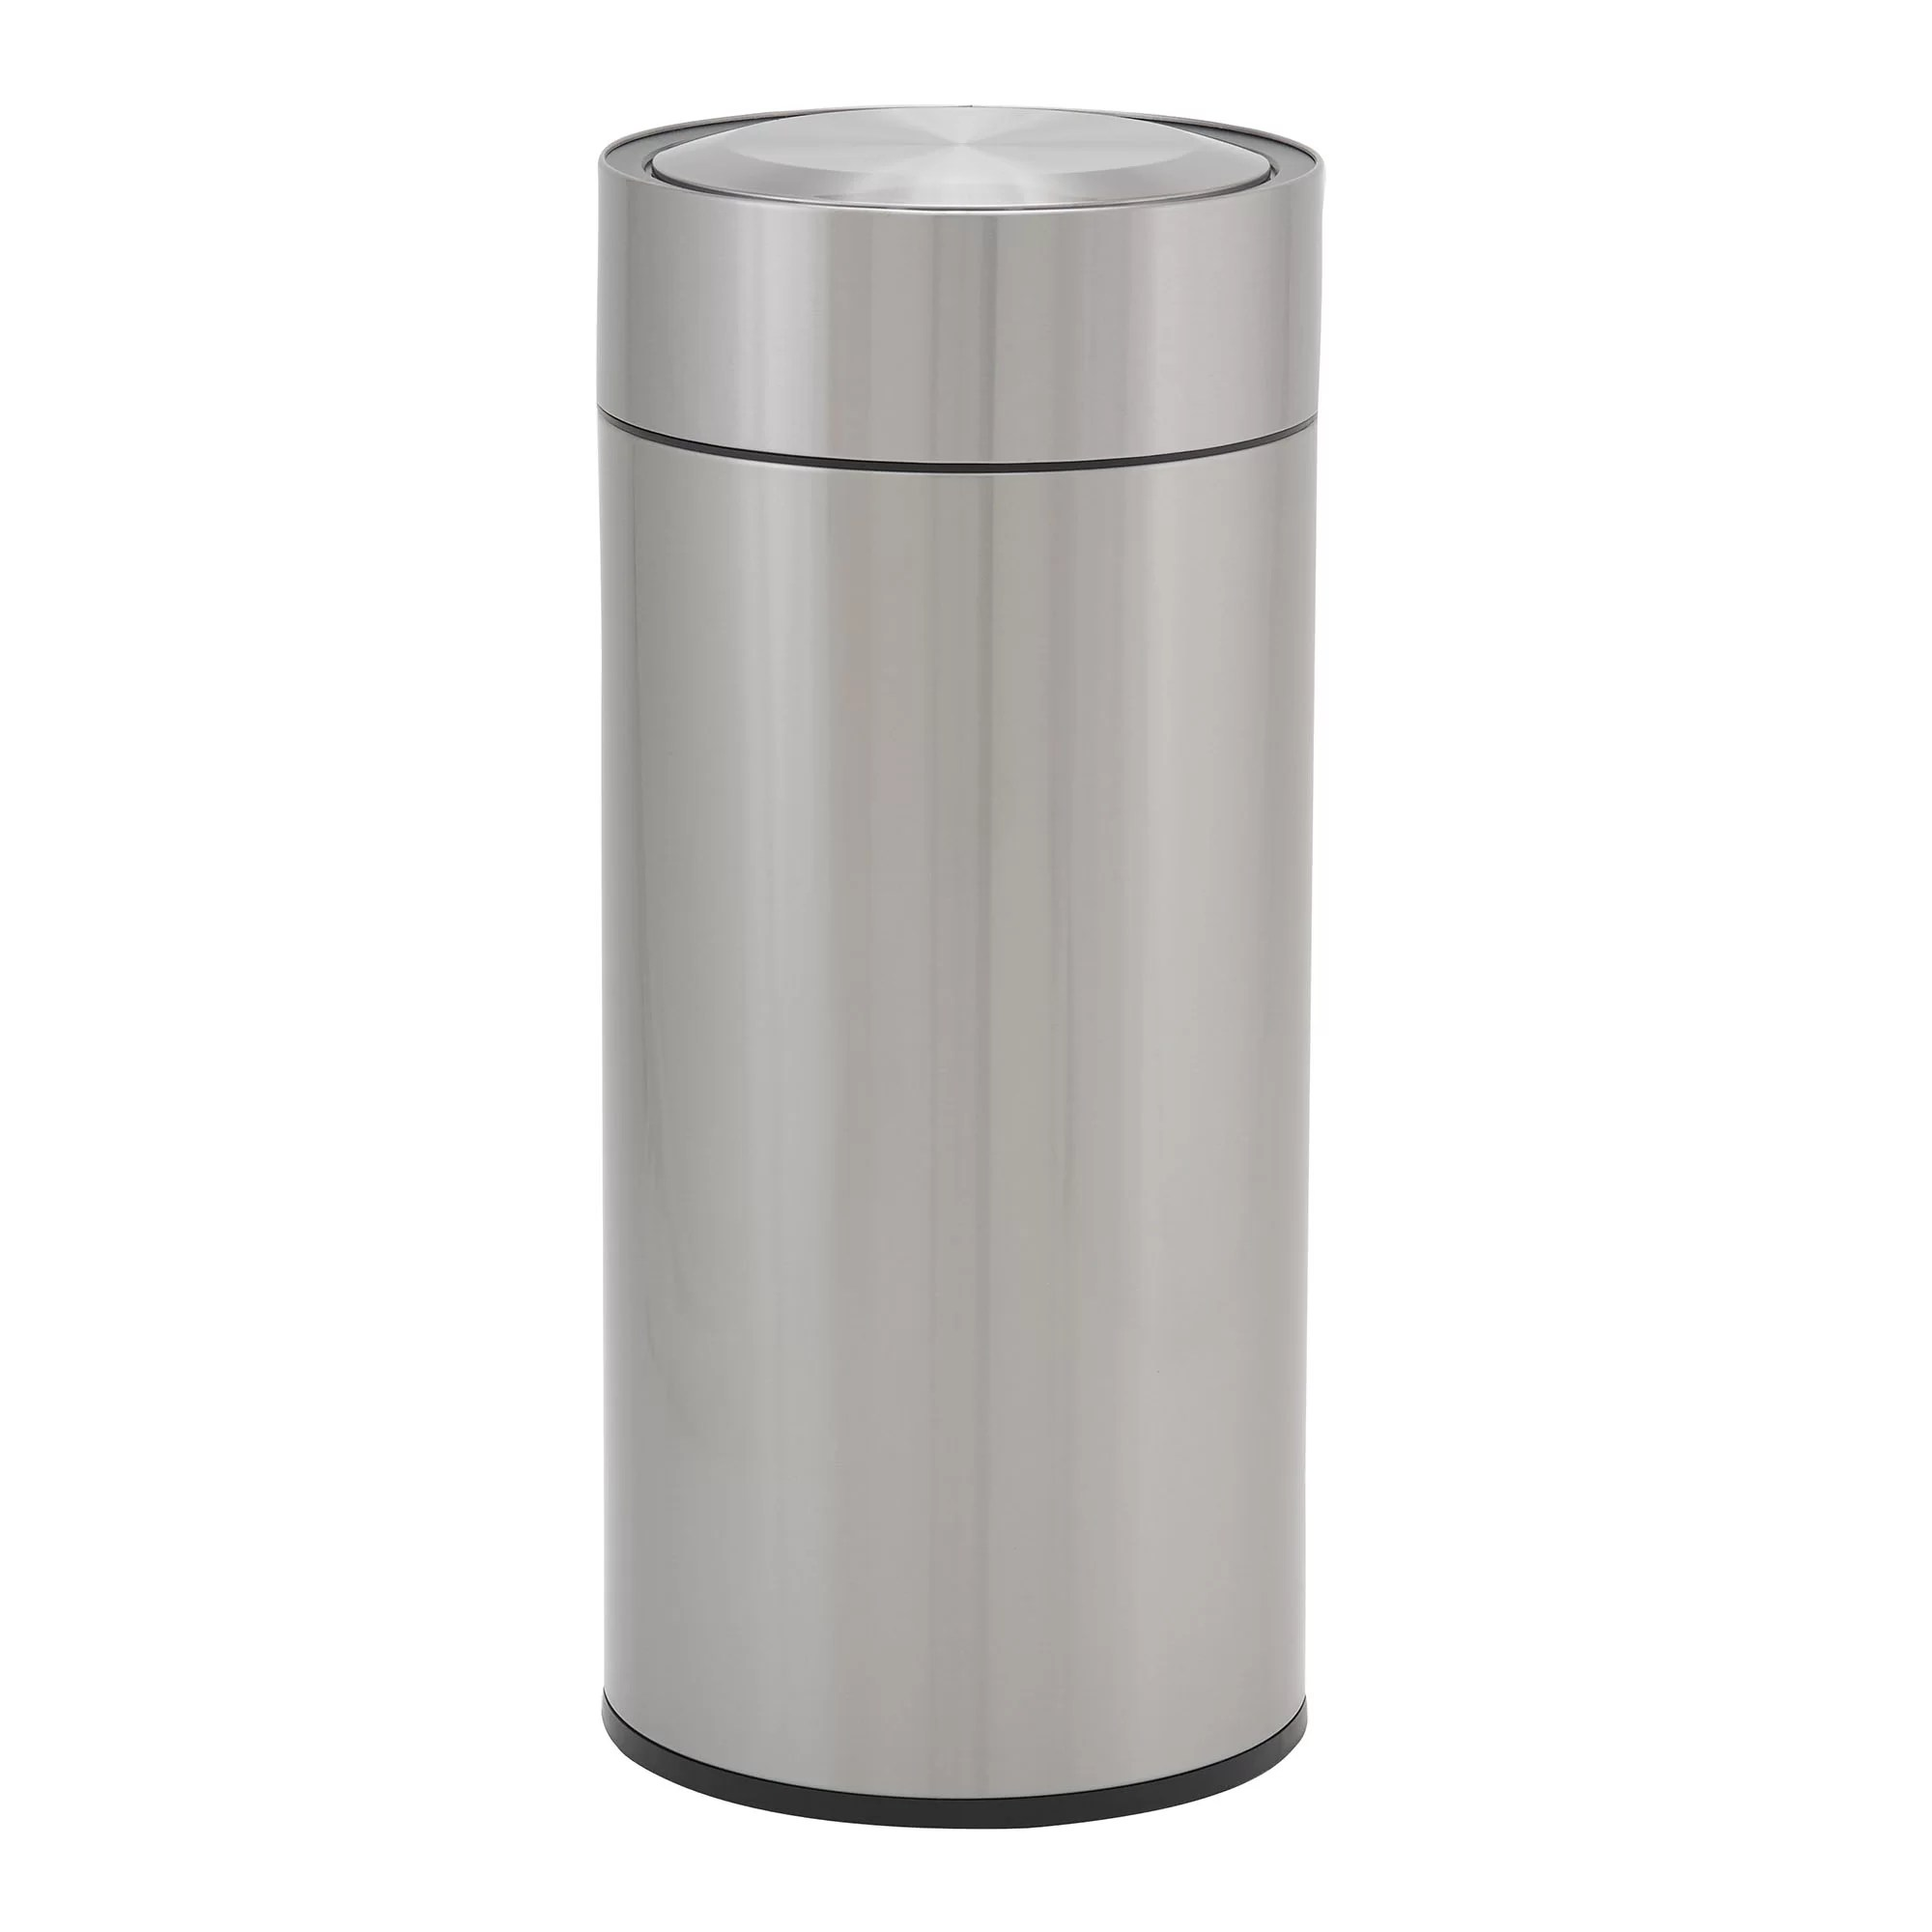 Metal Indoor Trash Can Design Trend Round Stainless Steel 8 Gallon Motion Sensor Trash Can